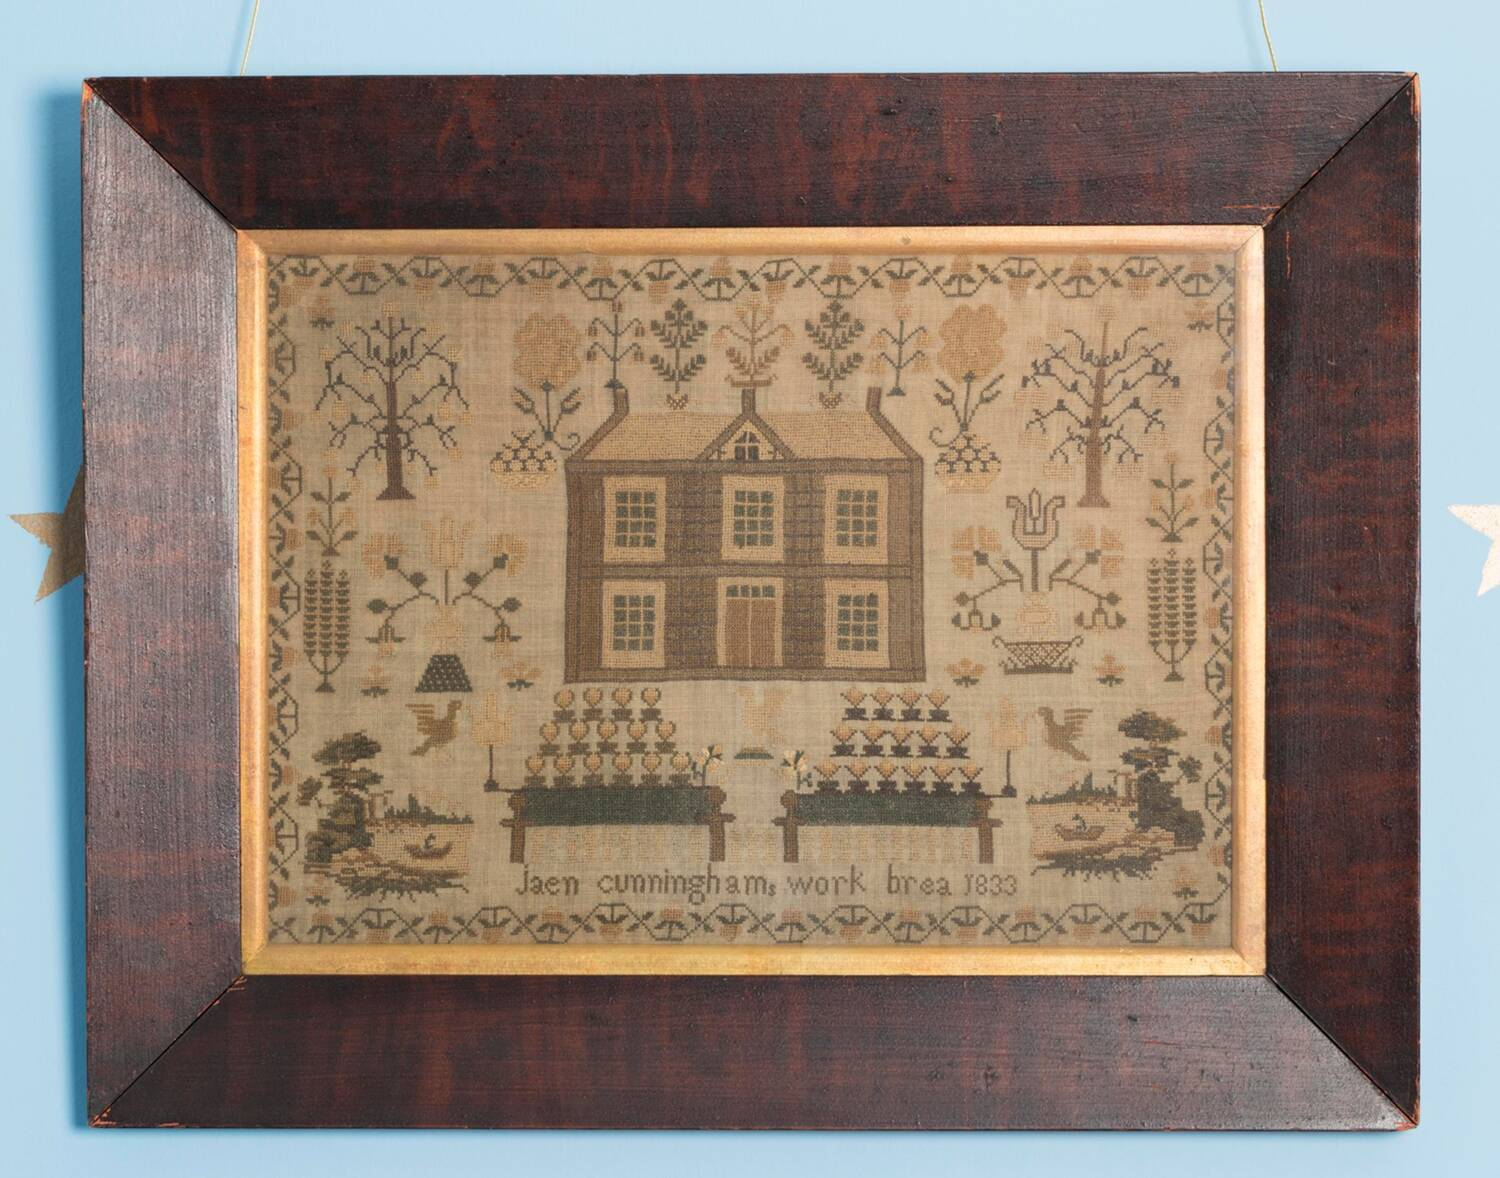 A piece of needlework on plain linen set in a dark brown frame. In the centre is a picture of a house with five windows arranged symmetrically around a centre door. The roof is pitched and has three chimneys. Around the house are small pictures of stylised trees and flowers, all sewn in coloured threads that have faded to soft greens, browns and yellow. Along the bottom are the words Jaen Cunninghams work Brea 1833. All set within a vine-like border of green stems and leaves with small yellowed flowers.